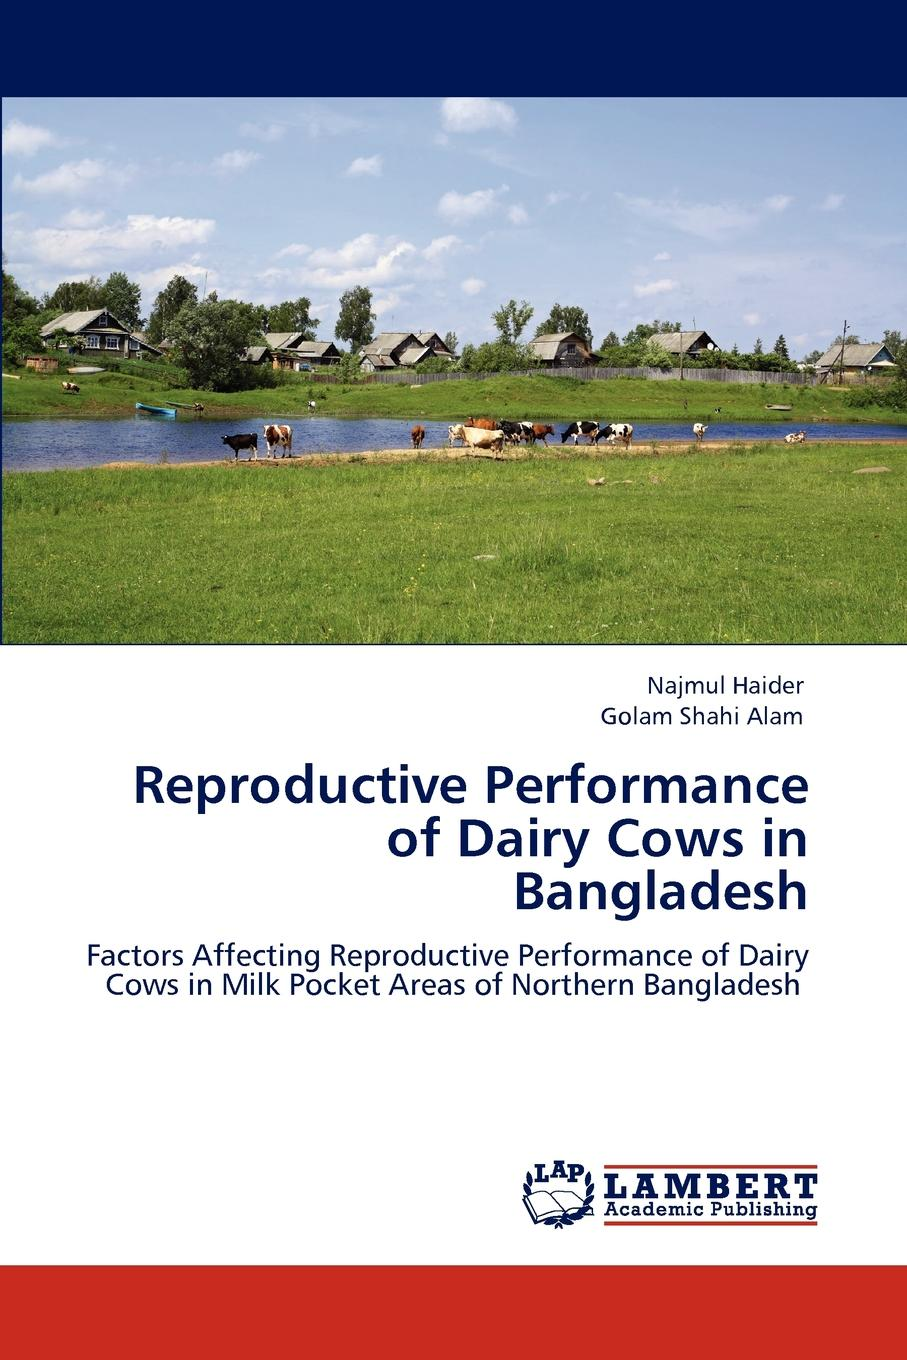 цены Najmul Haider, Golam Shahi Alam Reproductive Performance of Dairy Cows in Bangladesh